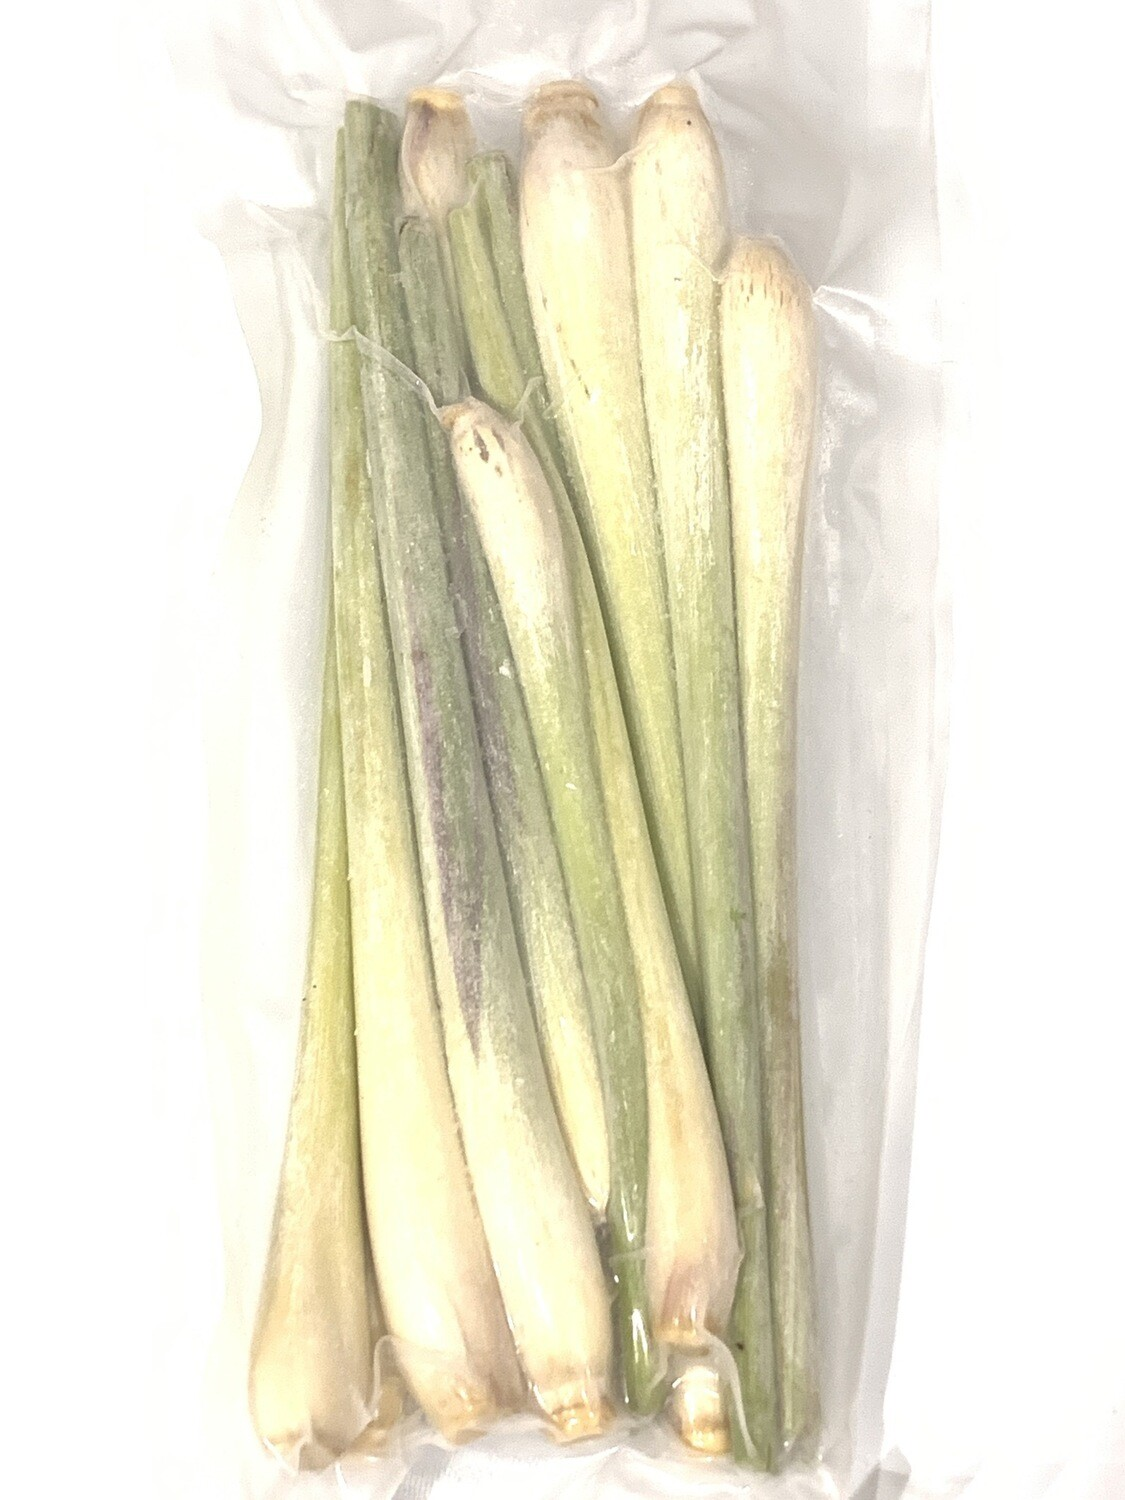 Sereh / Lemon Grass 200g